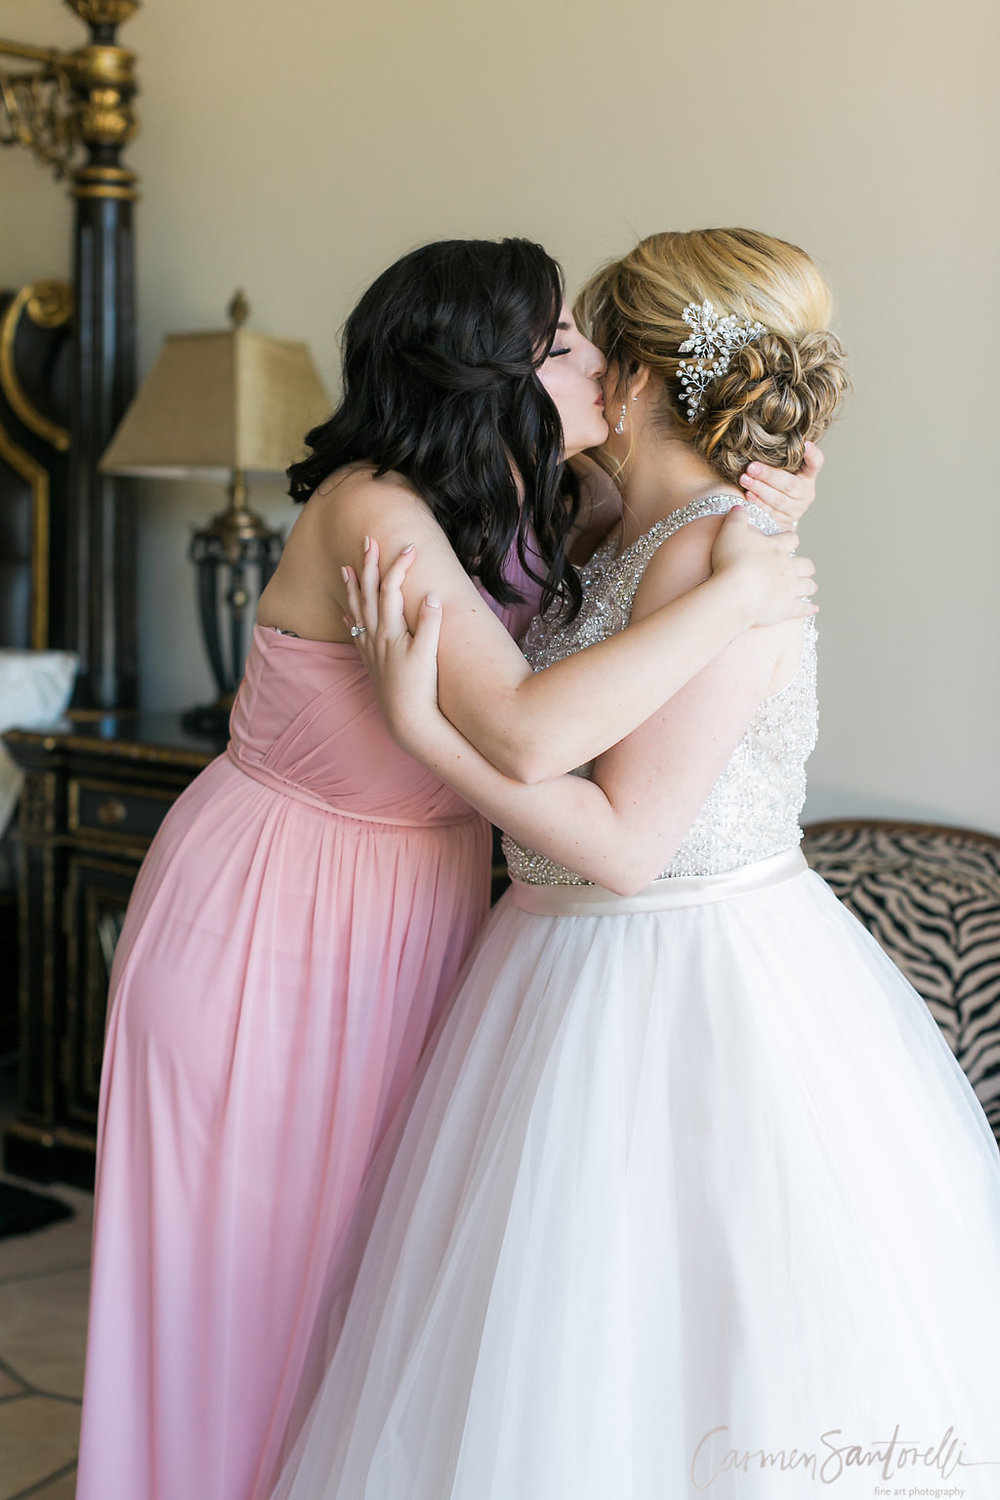 What a beautifully captured tender moment with the Bride.